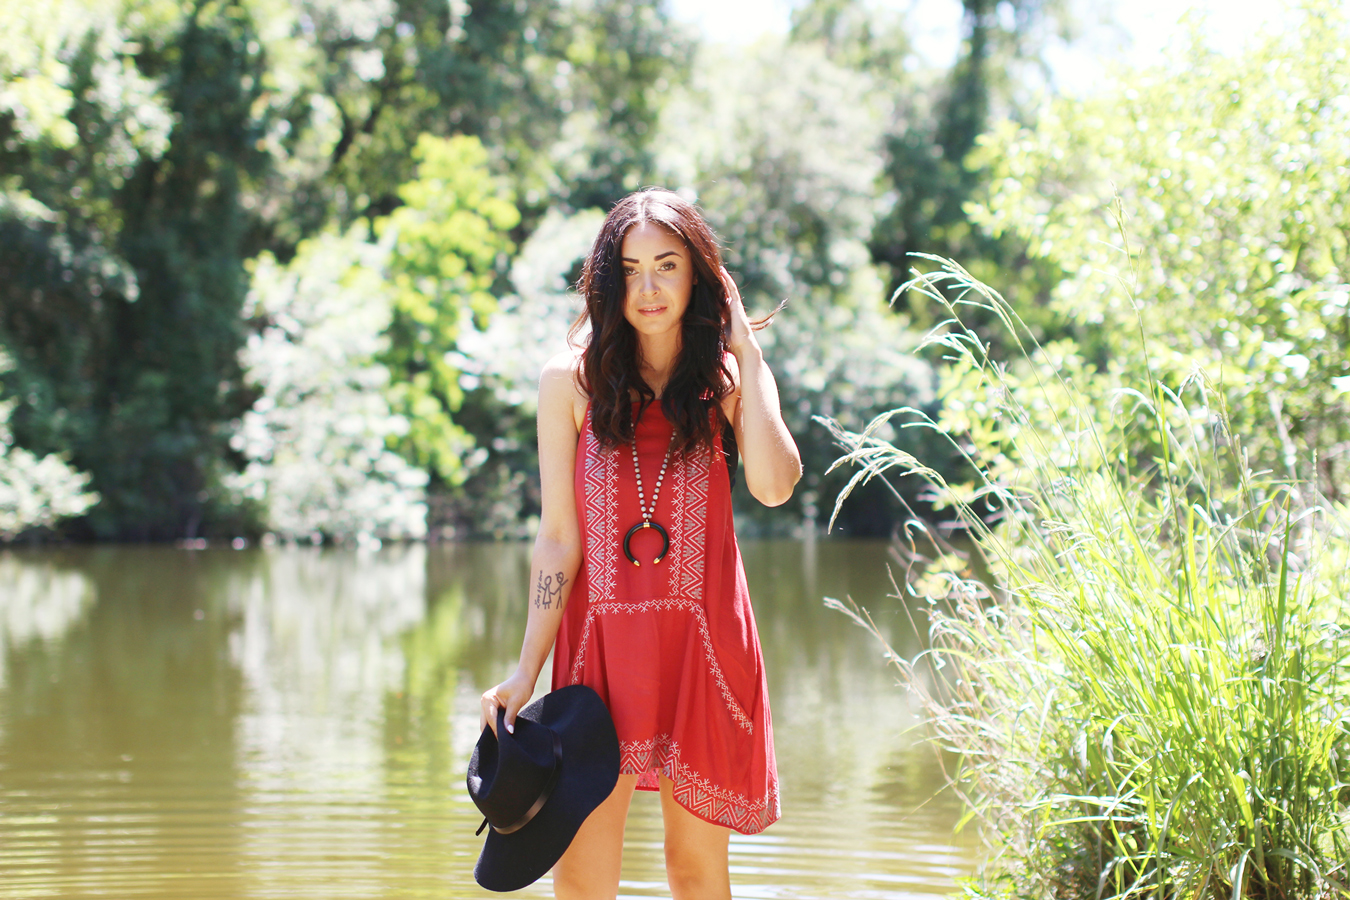 FTT-RED-PINK-SILVER-DRESS-HAT-WATER-FASHION-SHOOT-7